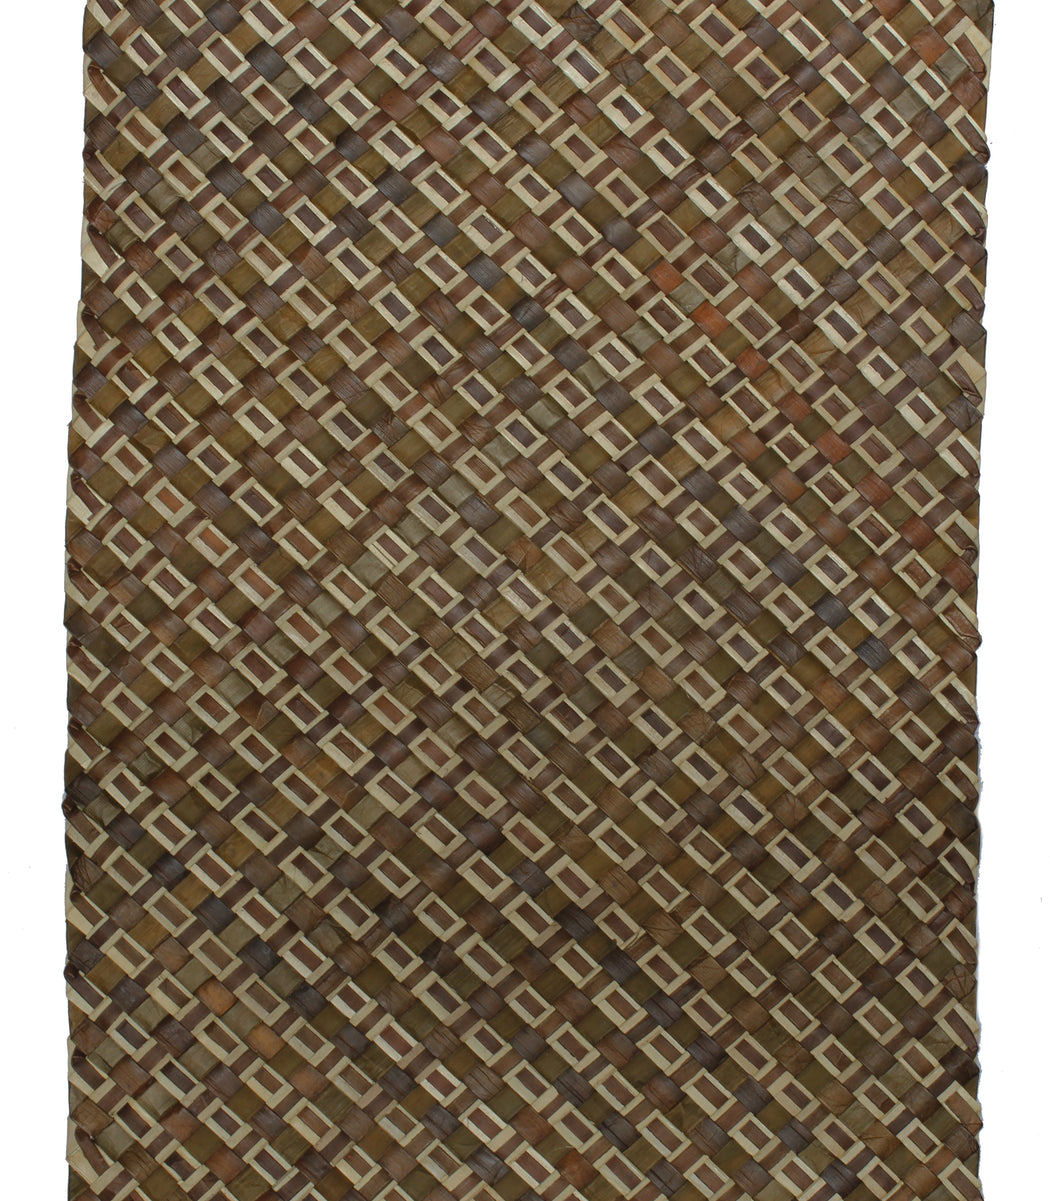 Table Runner Handwoven from Pandan Straw | Brown/Natural